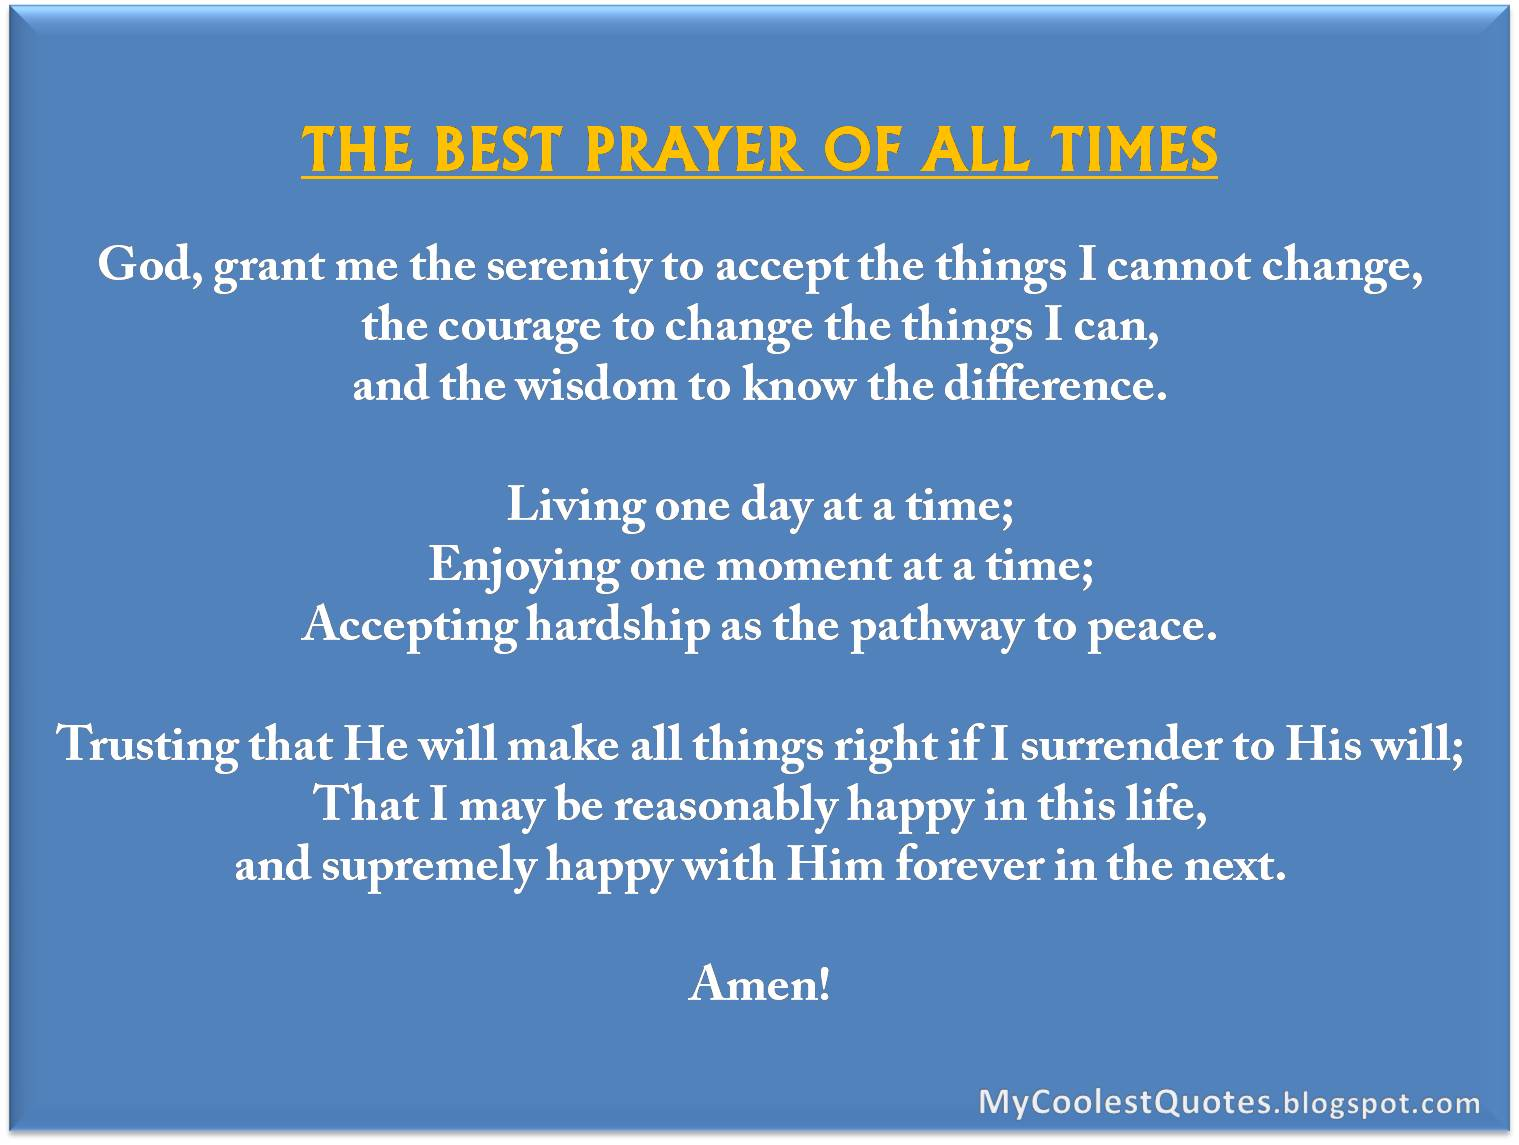 Best Quotes Of All Time About Life My Coolest Quotes The Best Prayer Of All Times